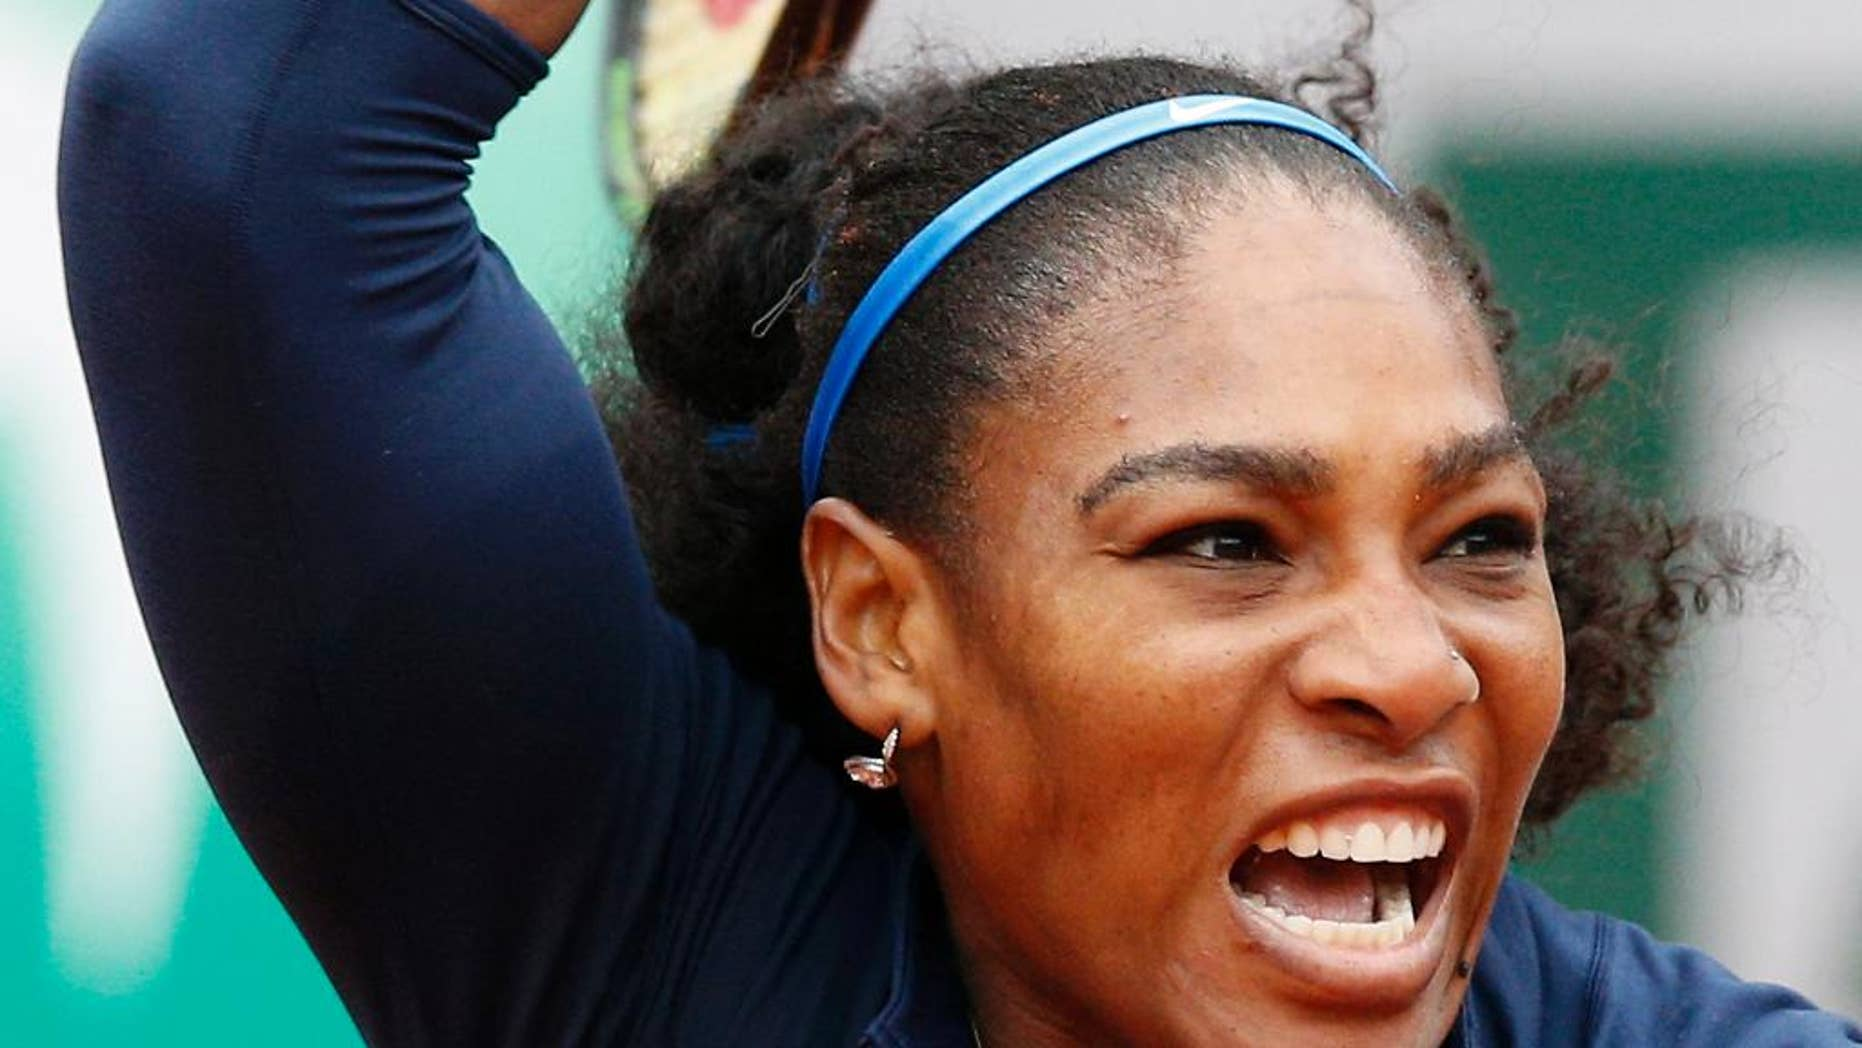 Serena Williams of the U.S. returns the ball to Ukraine's Elina Svitolina  during their fourth round match of the French Open tennis tournament at the Roland Garros stadium, Wednesday, June 1, 2016 in Paris.  (AP Photo/Christophe Ena)